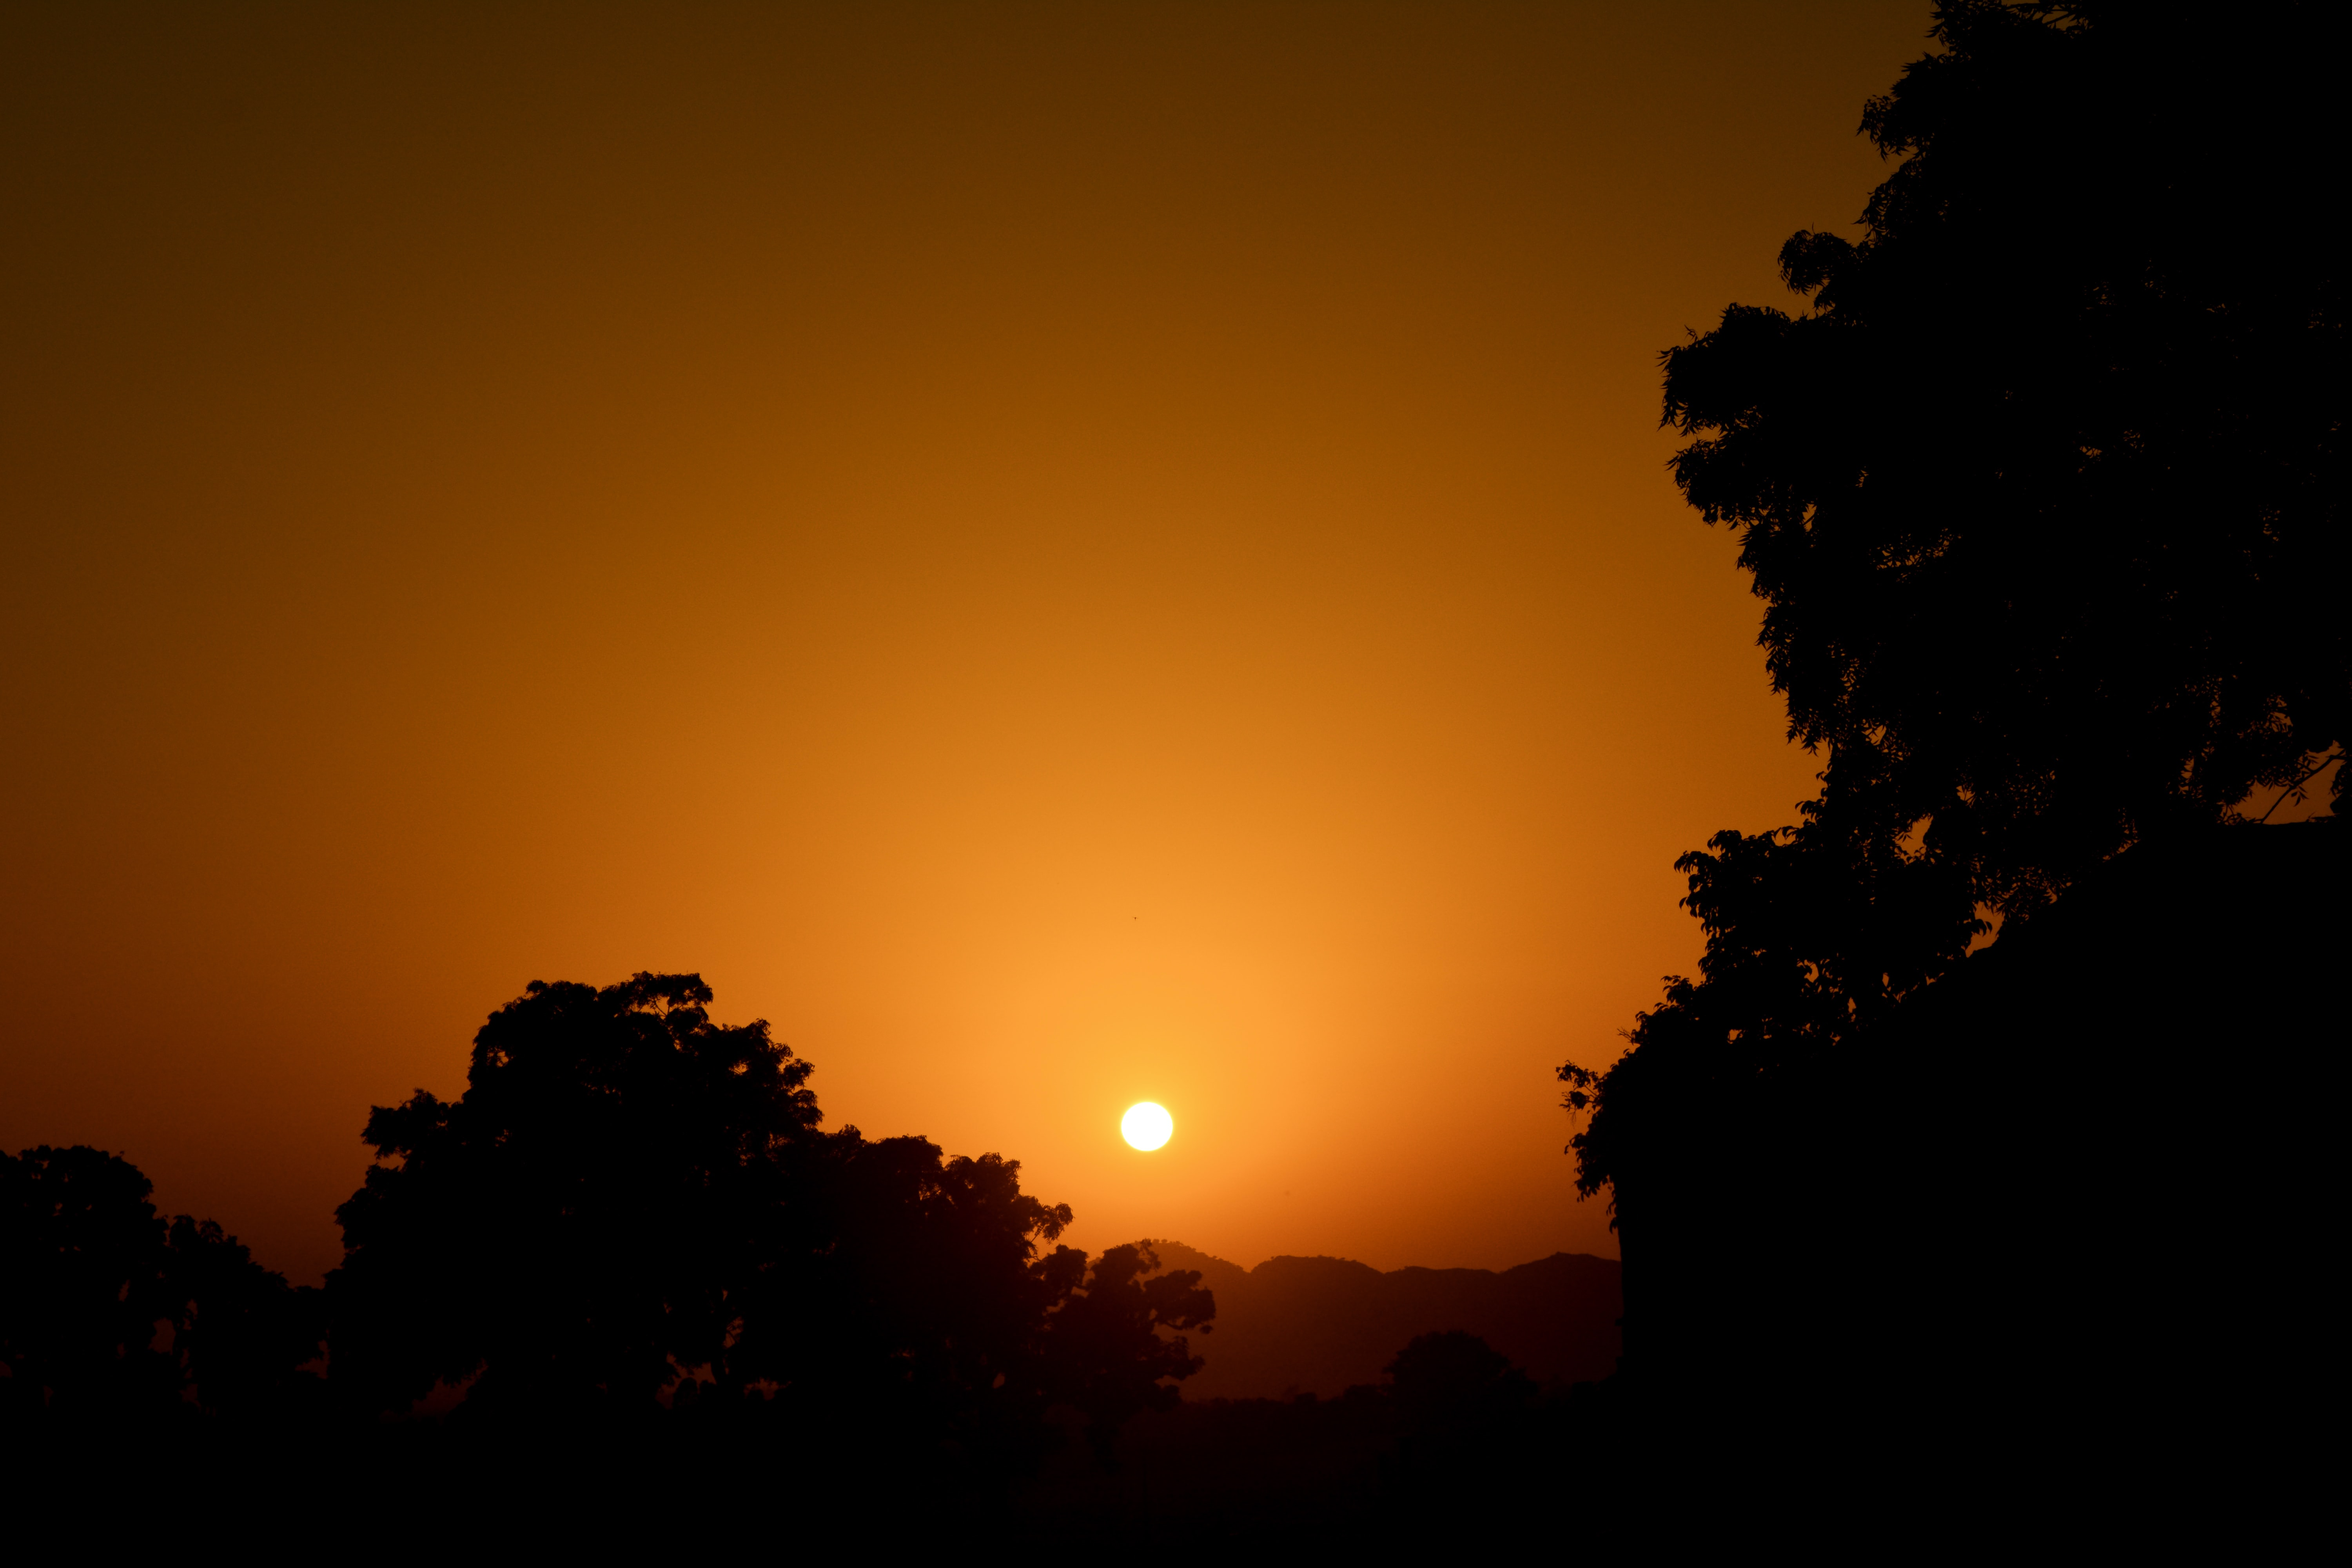 Trees in silhouette against a dramatic hazy warm golden sunset.